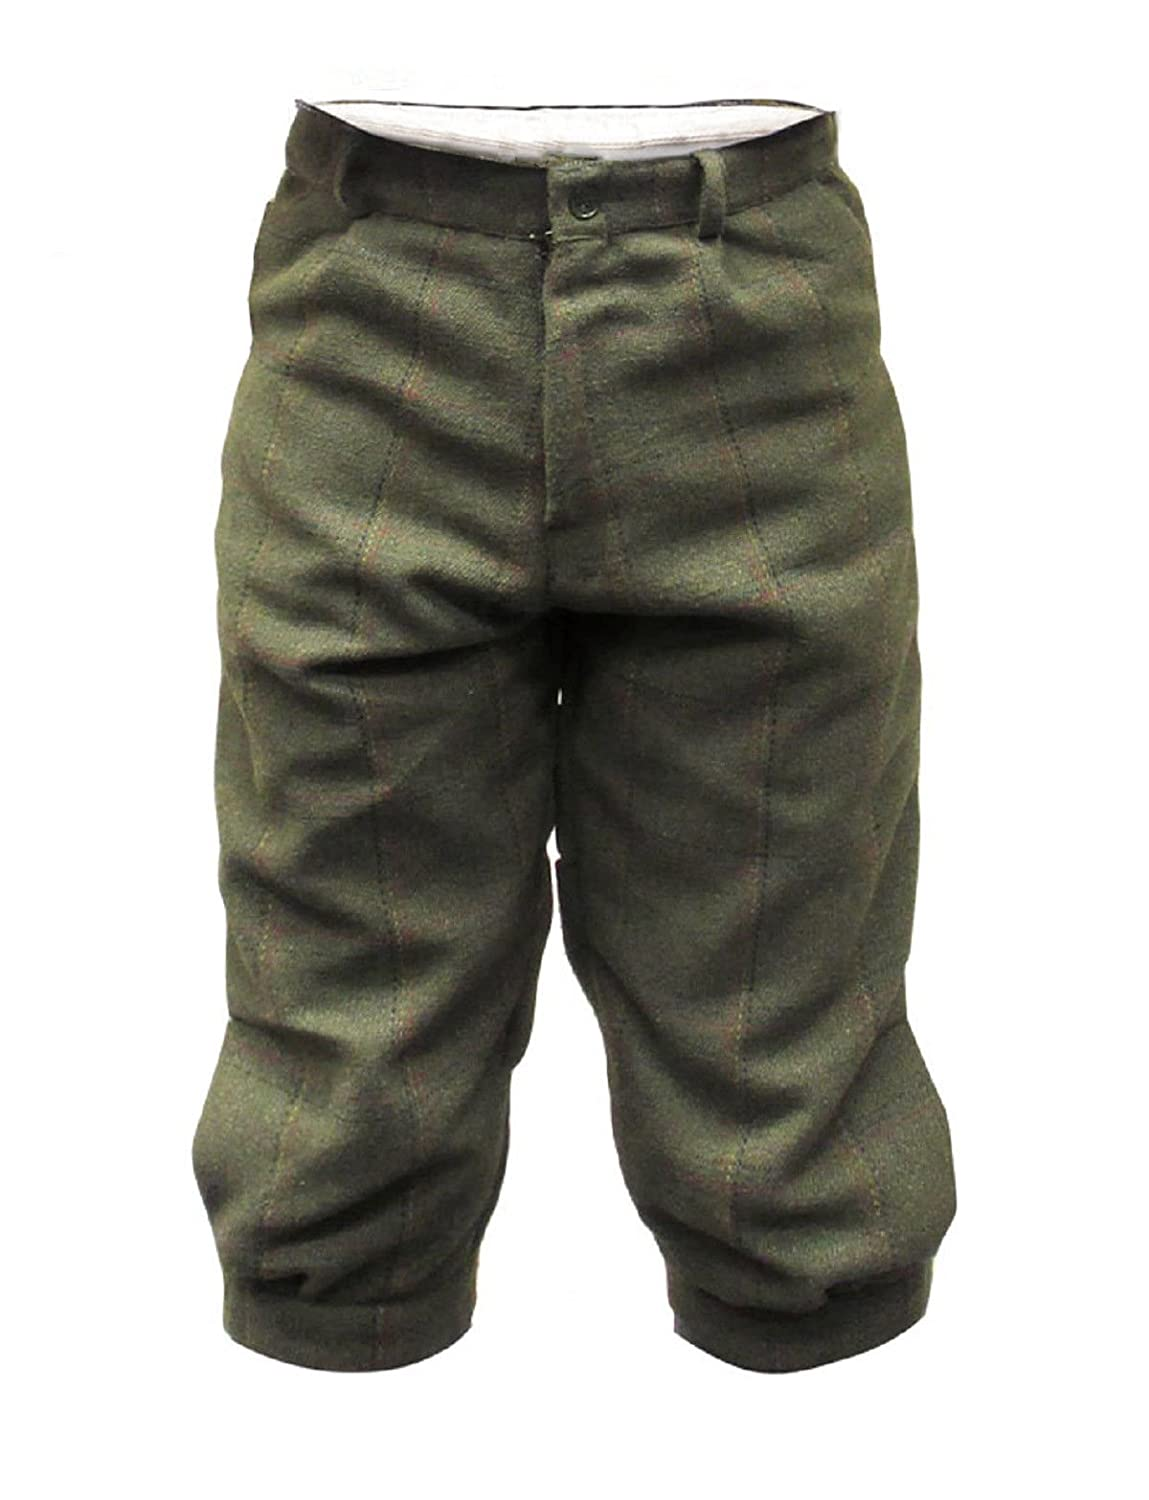 Men's Steampunk Clothing, Costumes, Fashion Stormkloth Mens Hereford Tweed Breeks Trousers Breeches Hunting Shooting Fishing Field Farm $49.99 AT vintagedancer.com